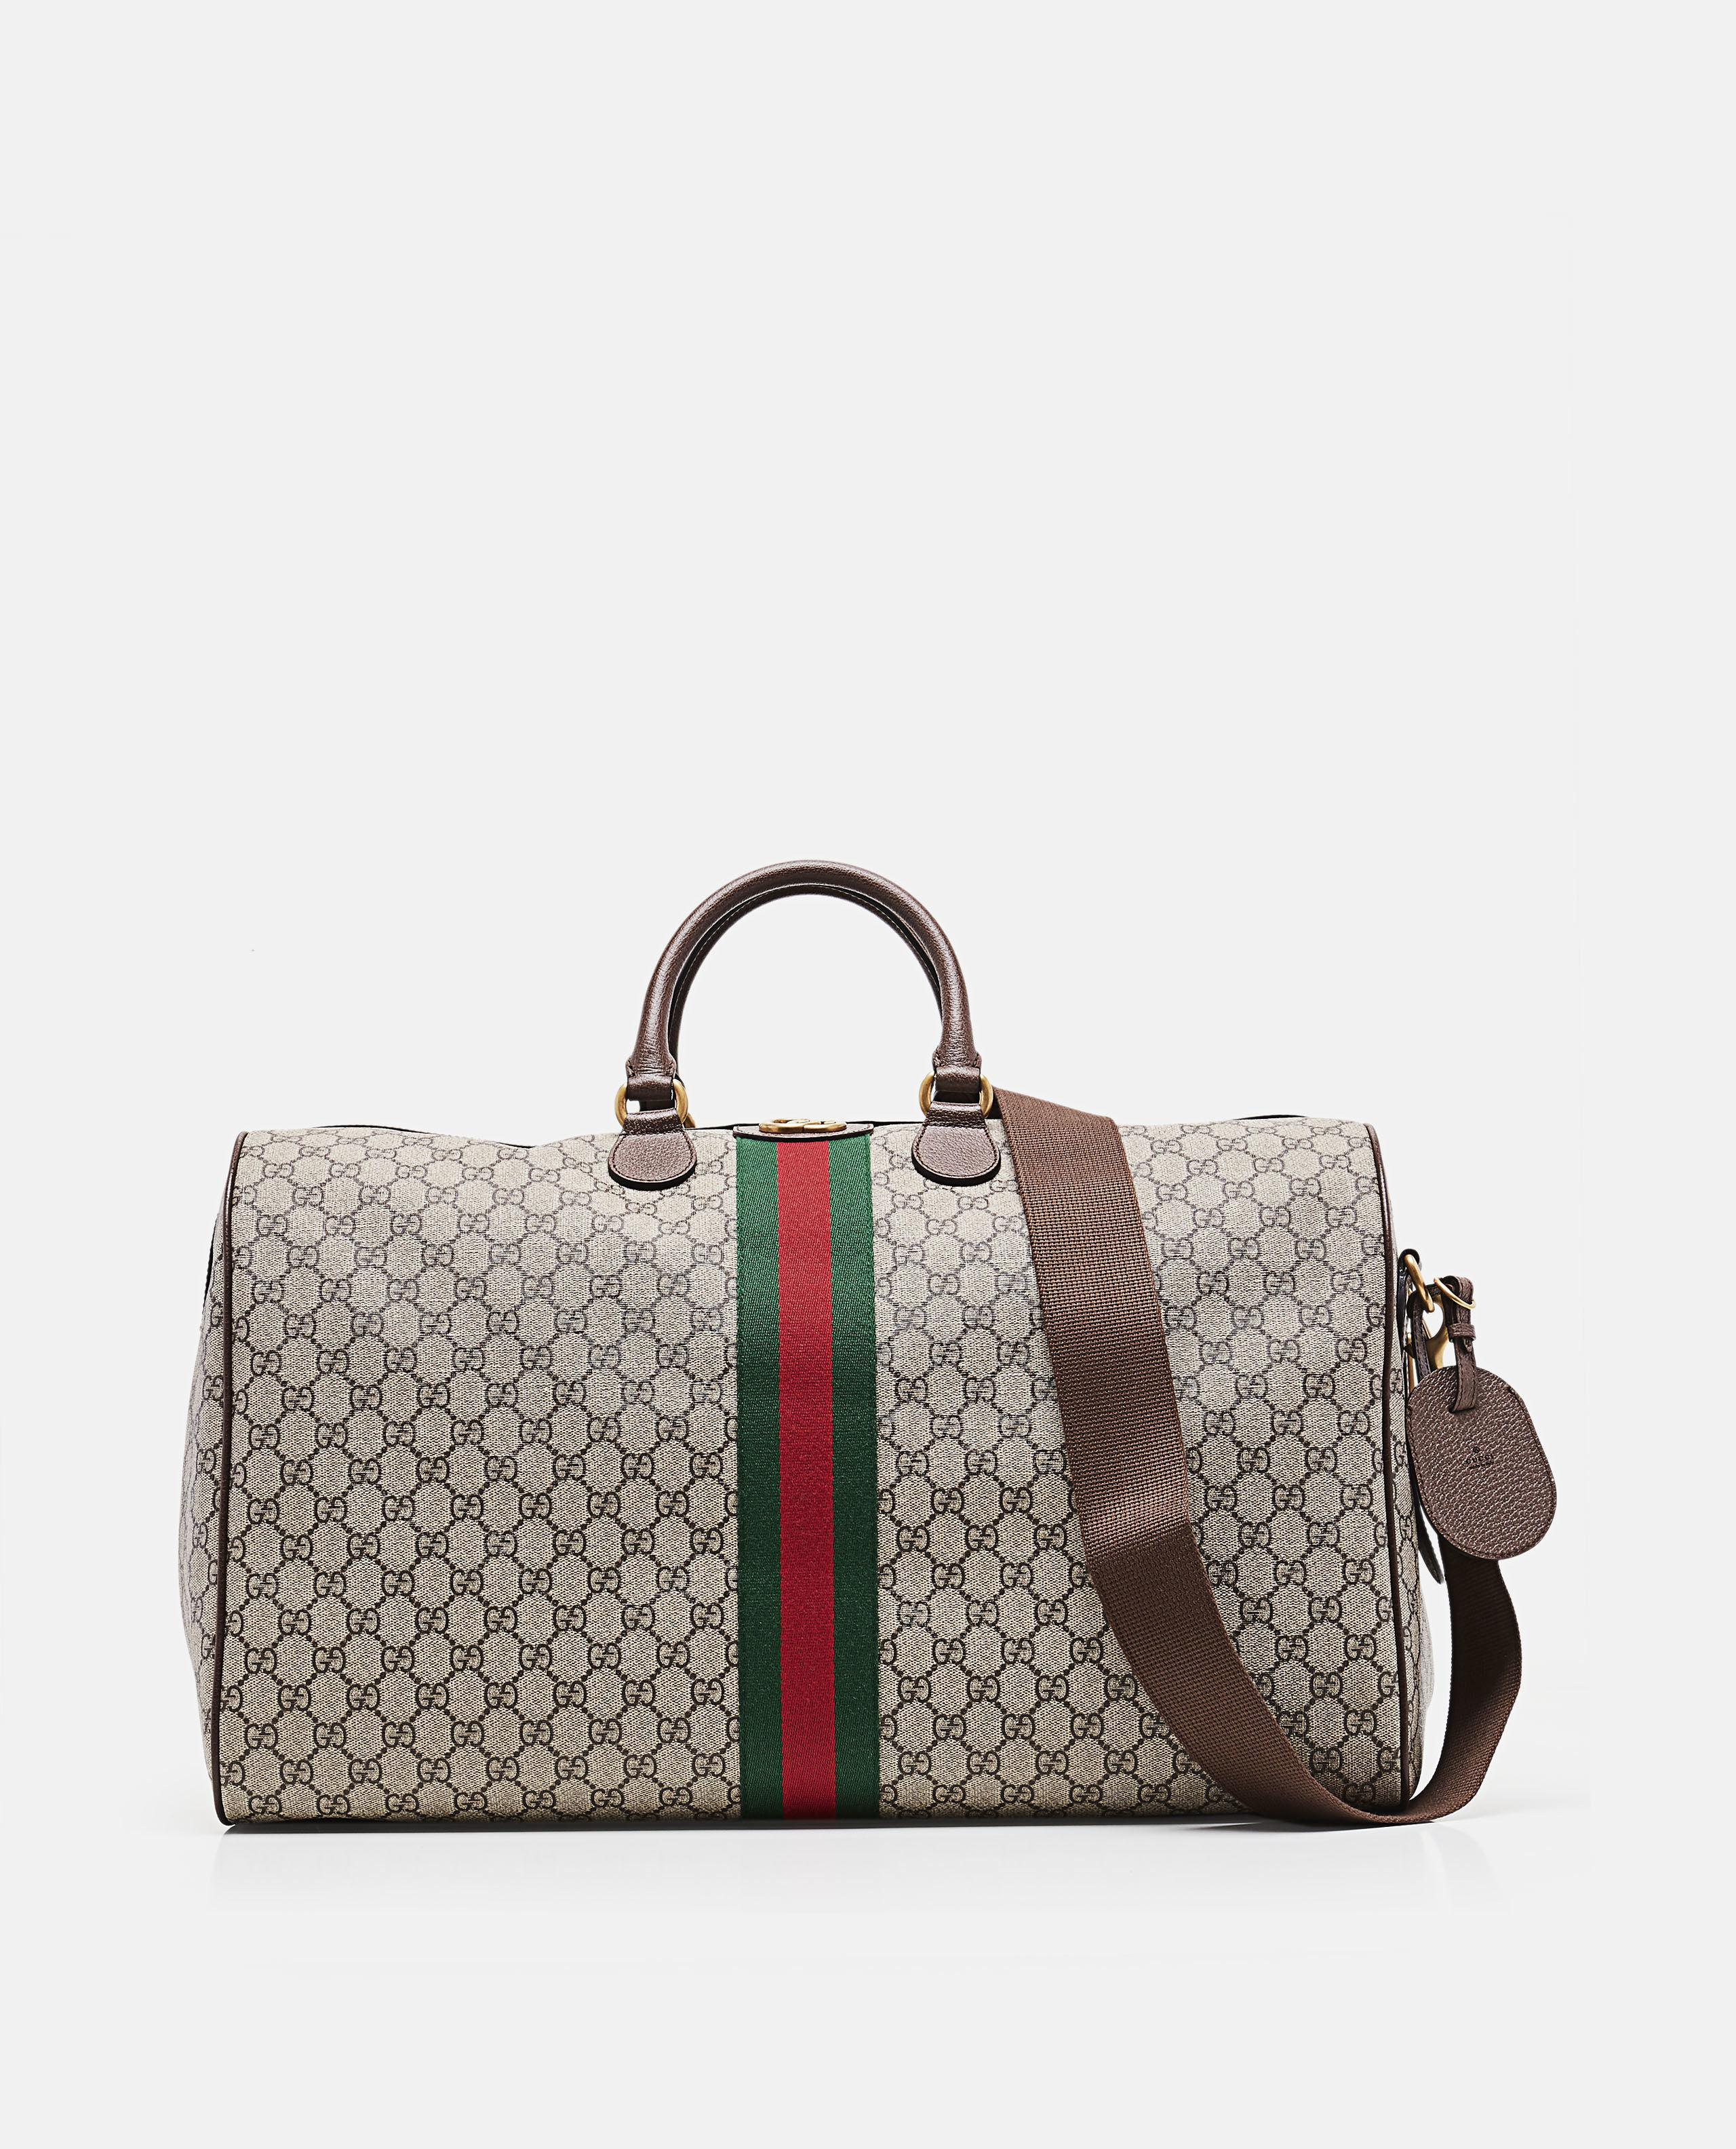 Lyst - Gucci Ophidia Gg Large Carry-on Duffle in Brown for Men 9b95b90f1c159